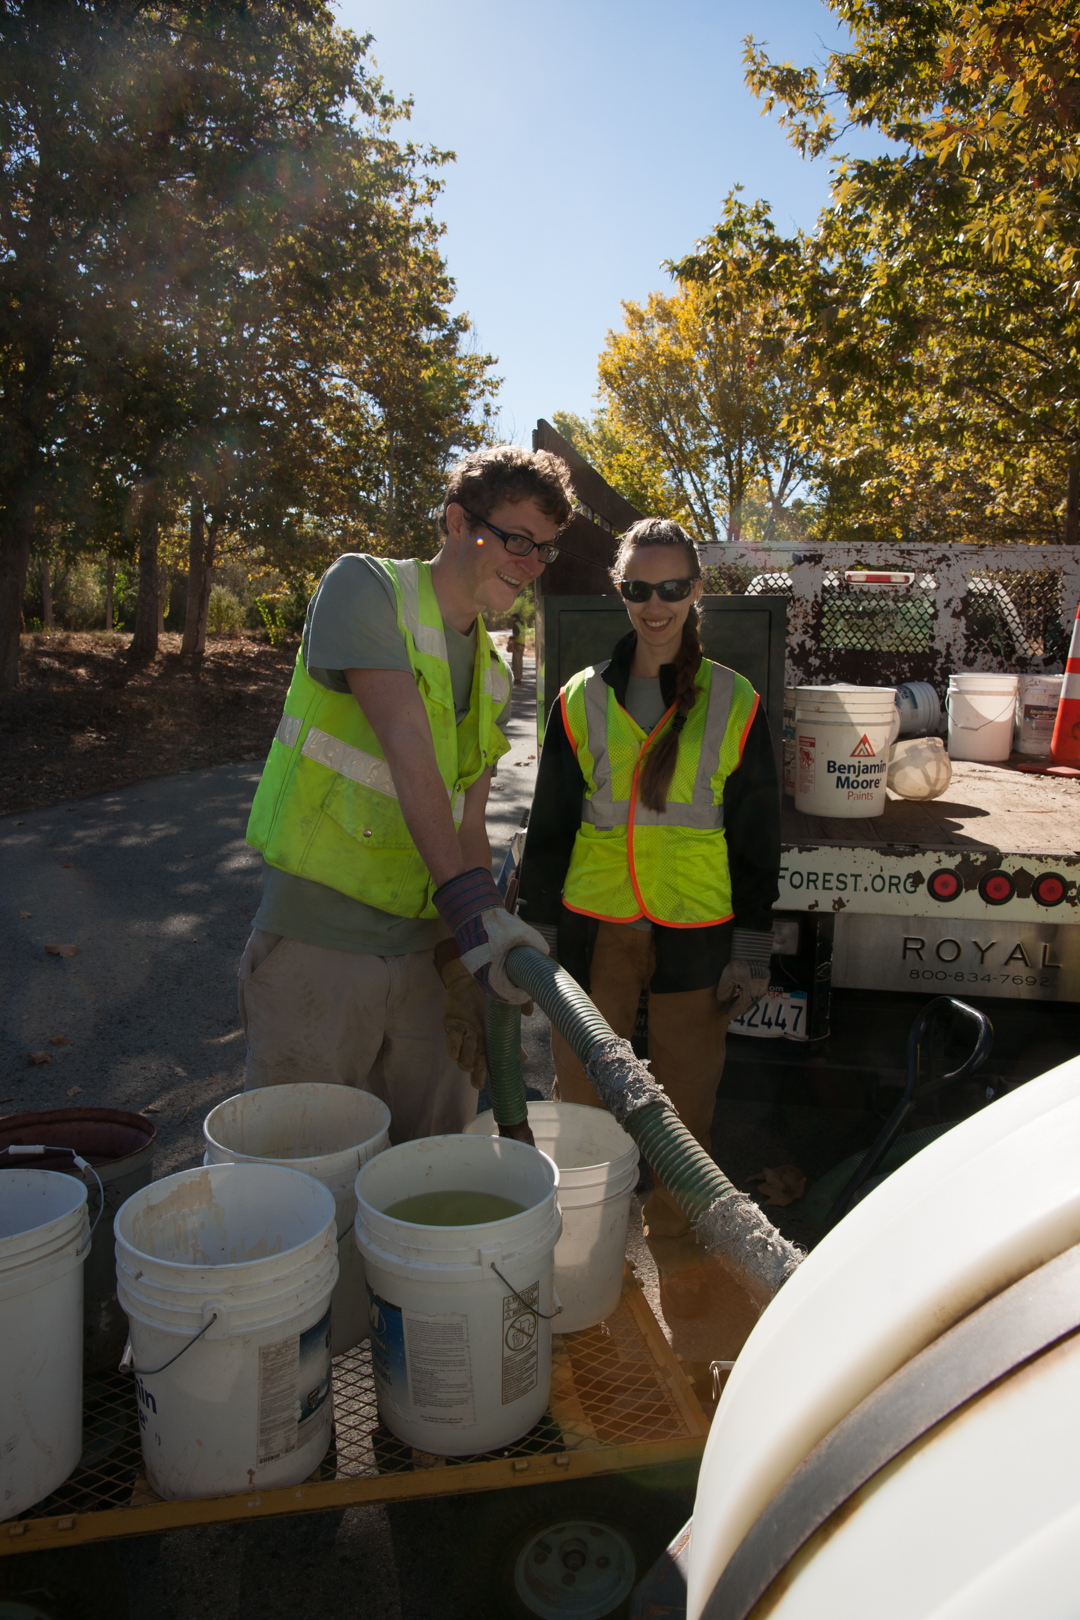 Pictured: Two OCF Americorps members watering trees in a drought